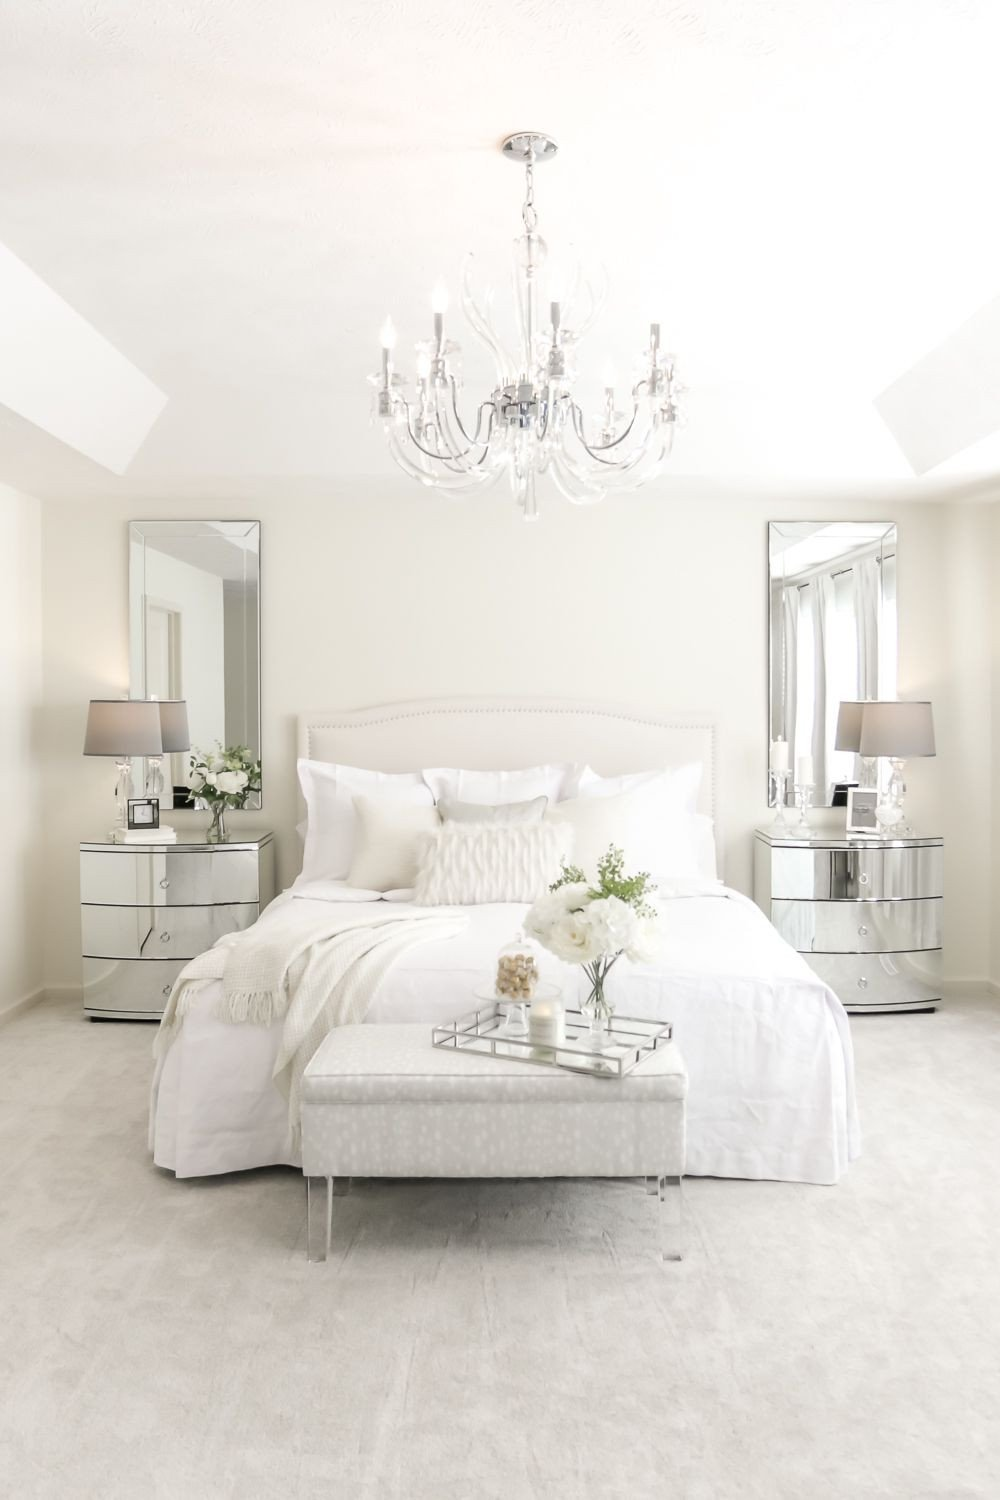 White Master Bedroom Furniture Awesome Mirrored Nightstands Chandelier and All White Bedding You